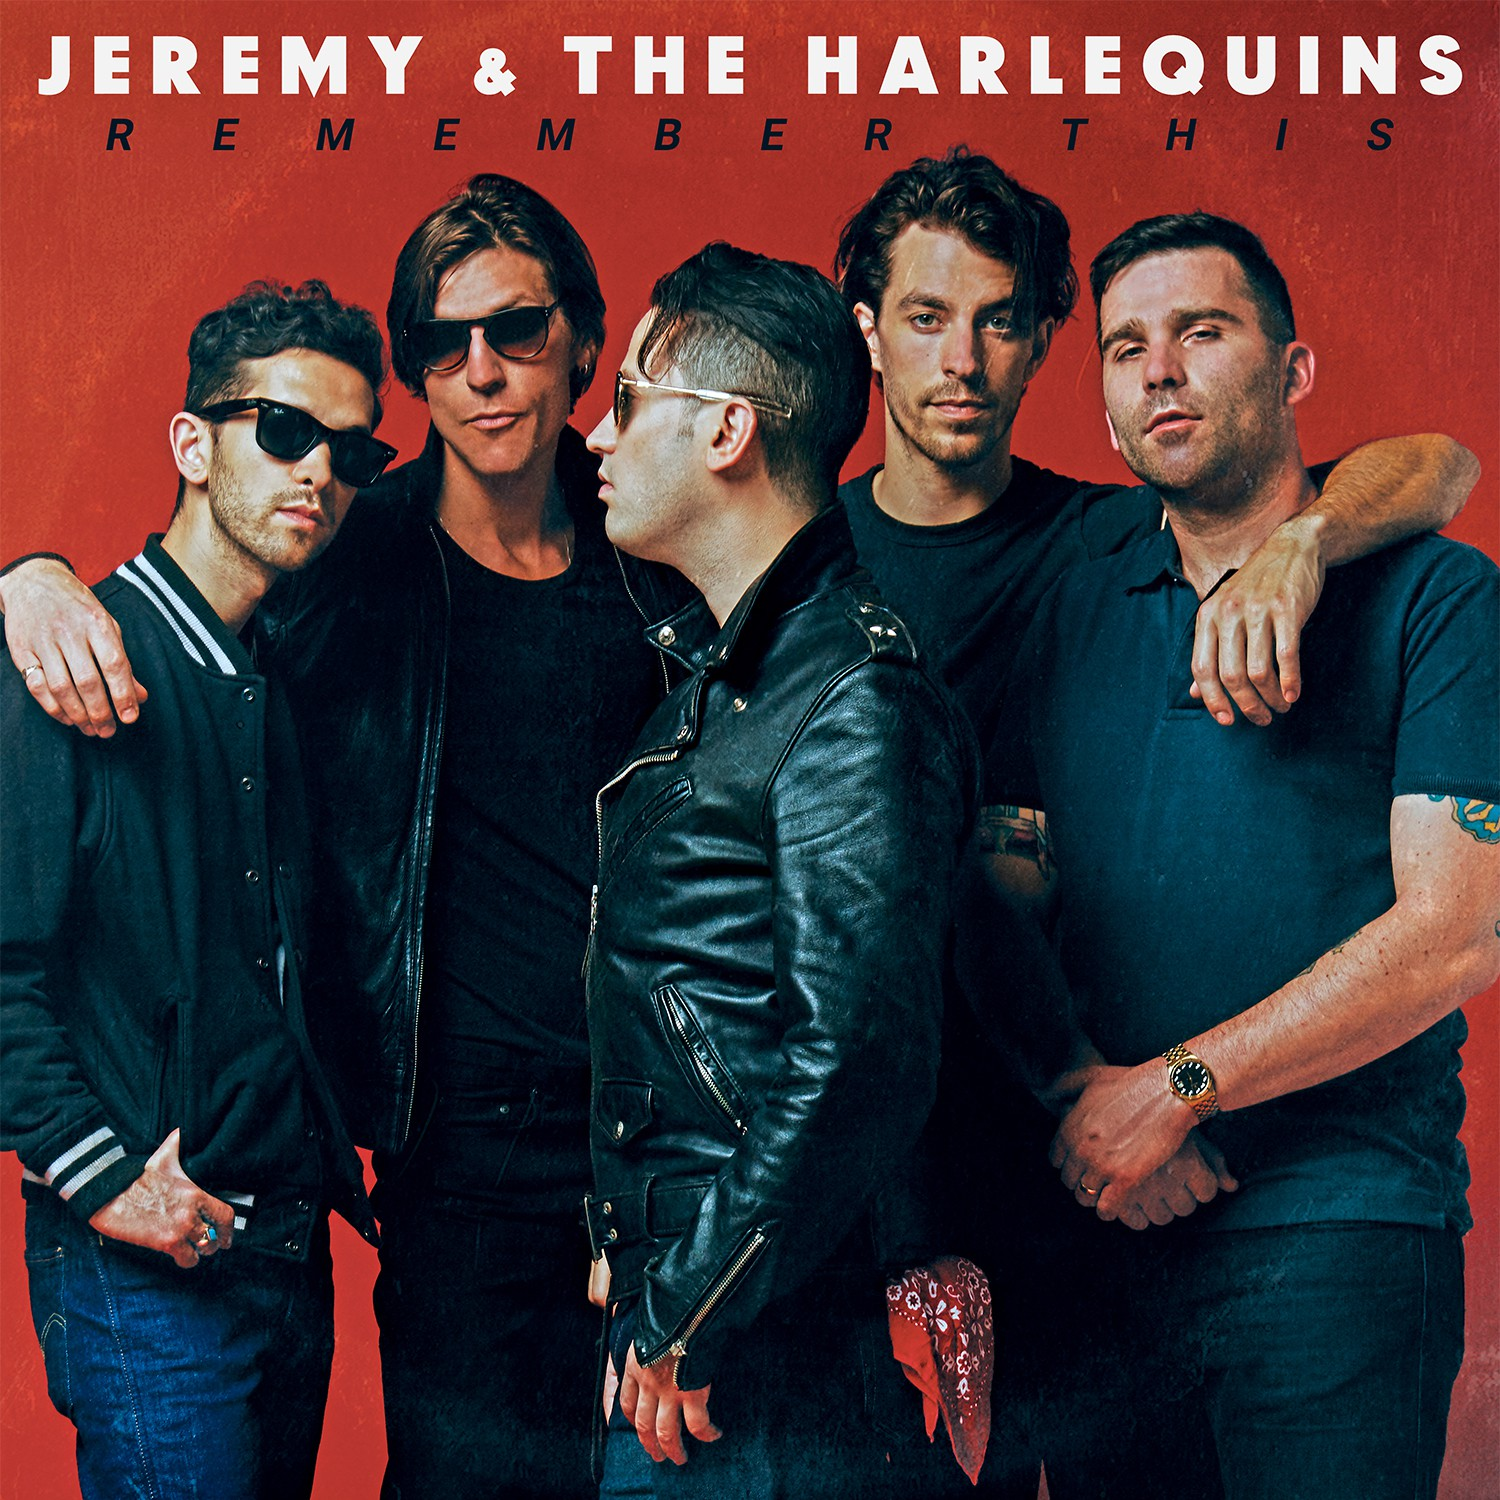 Jeremy & The Harlequins - Remember This - CD/LP